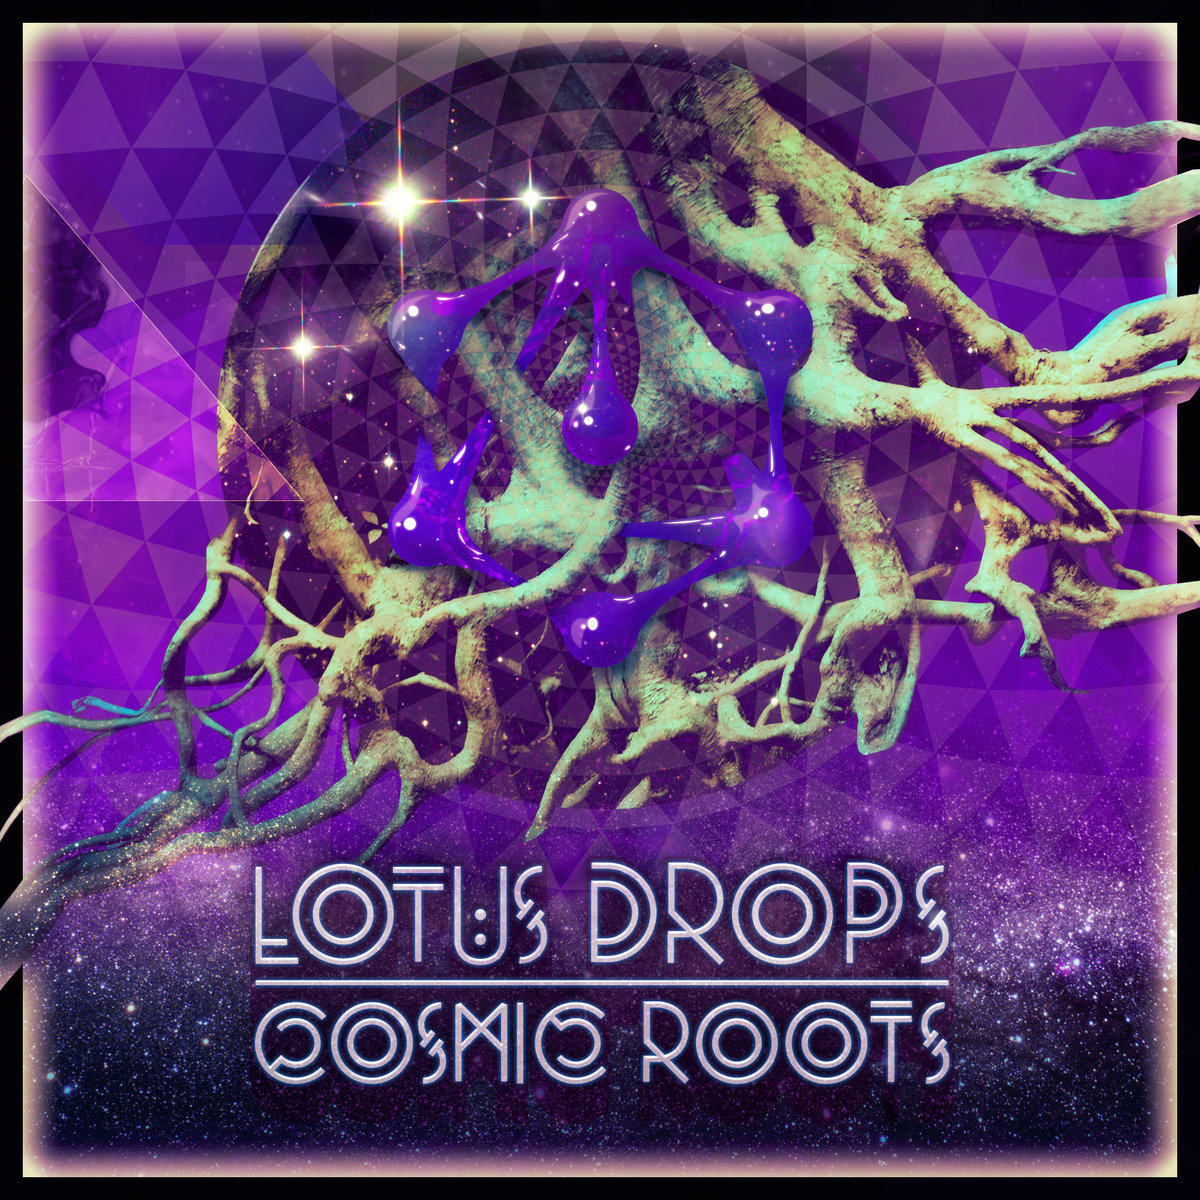 Lotus Drops - Under the Veil @ 'Cosmic Roots' album (electronic, dubstep)